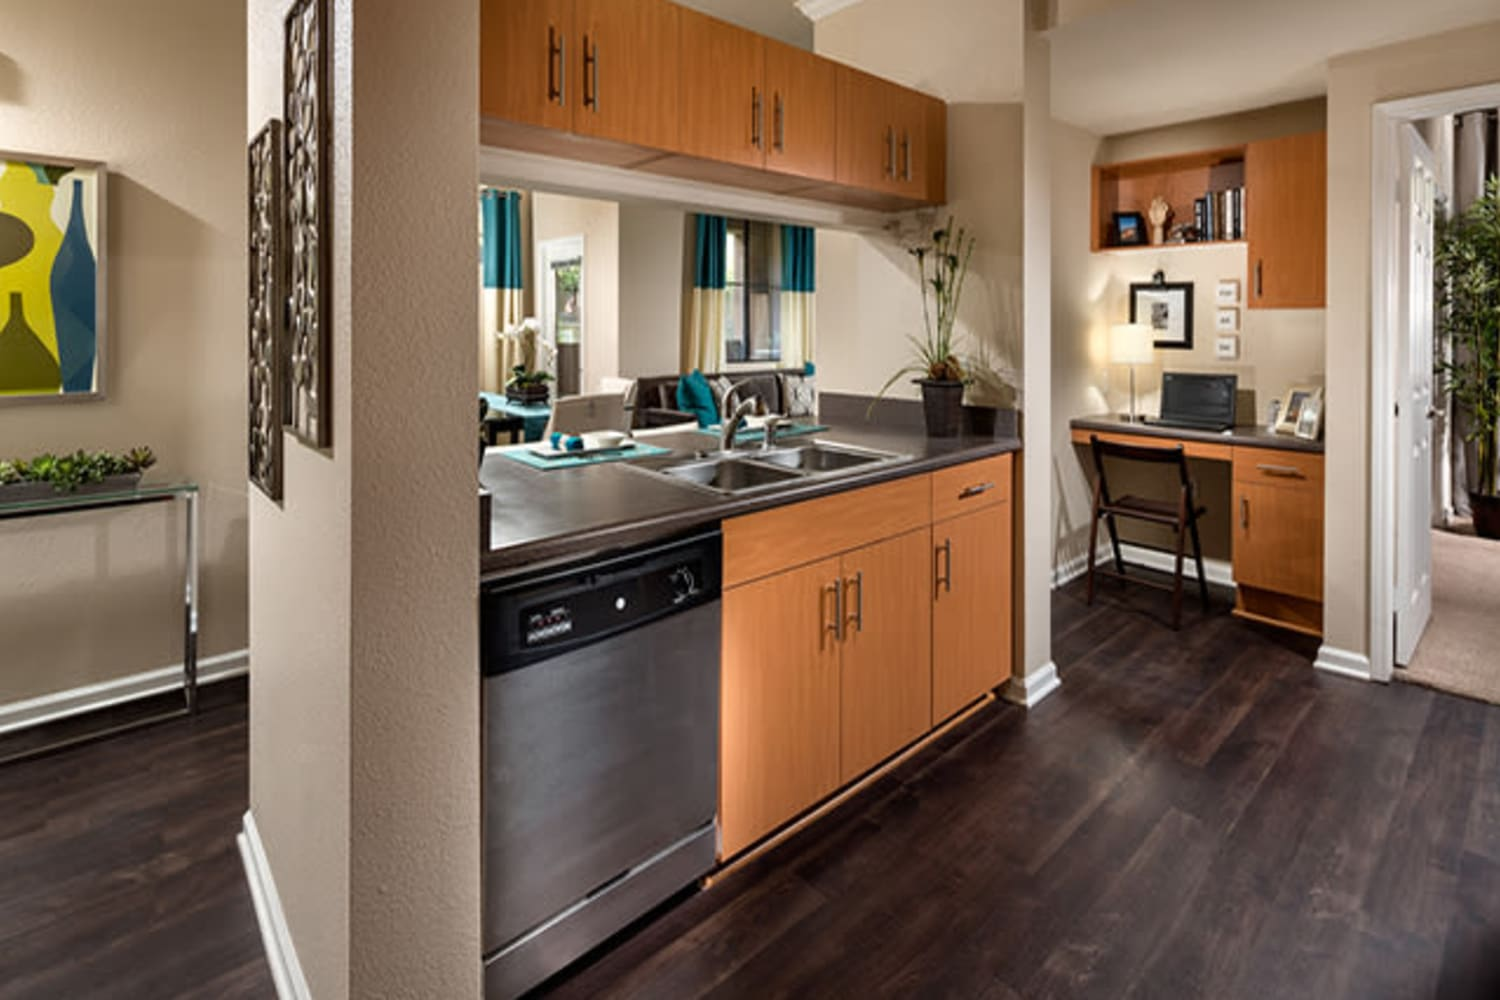 Open concept kitchen at Links at Westridge in Valencia, California